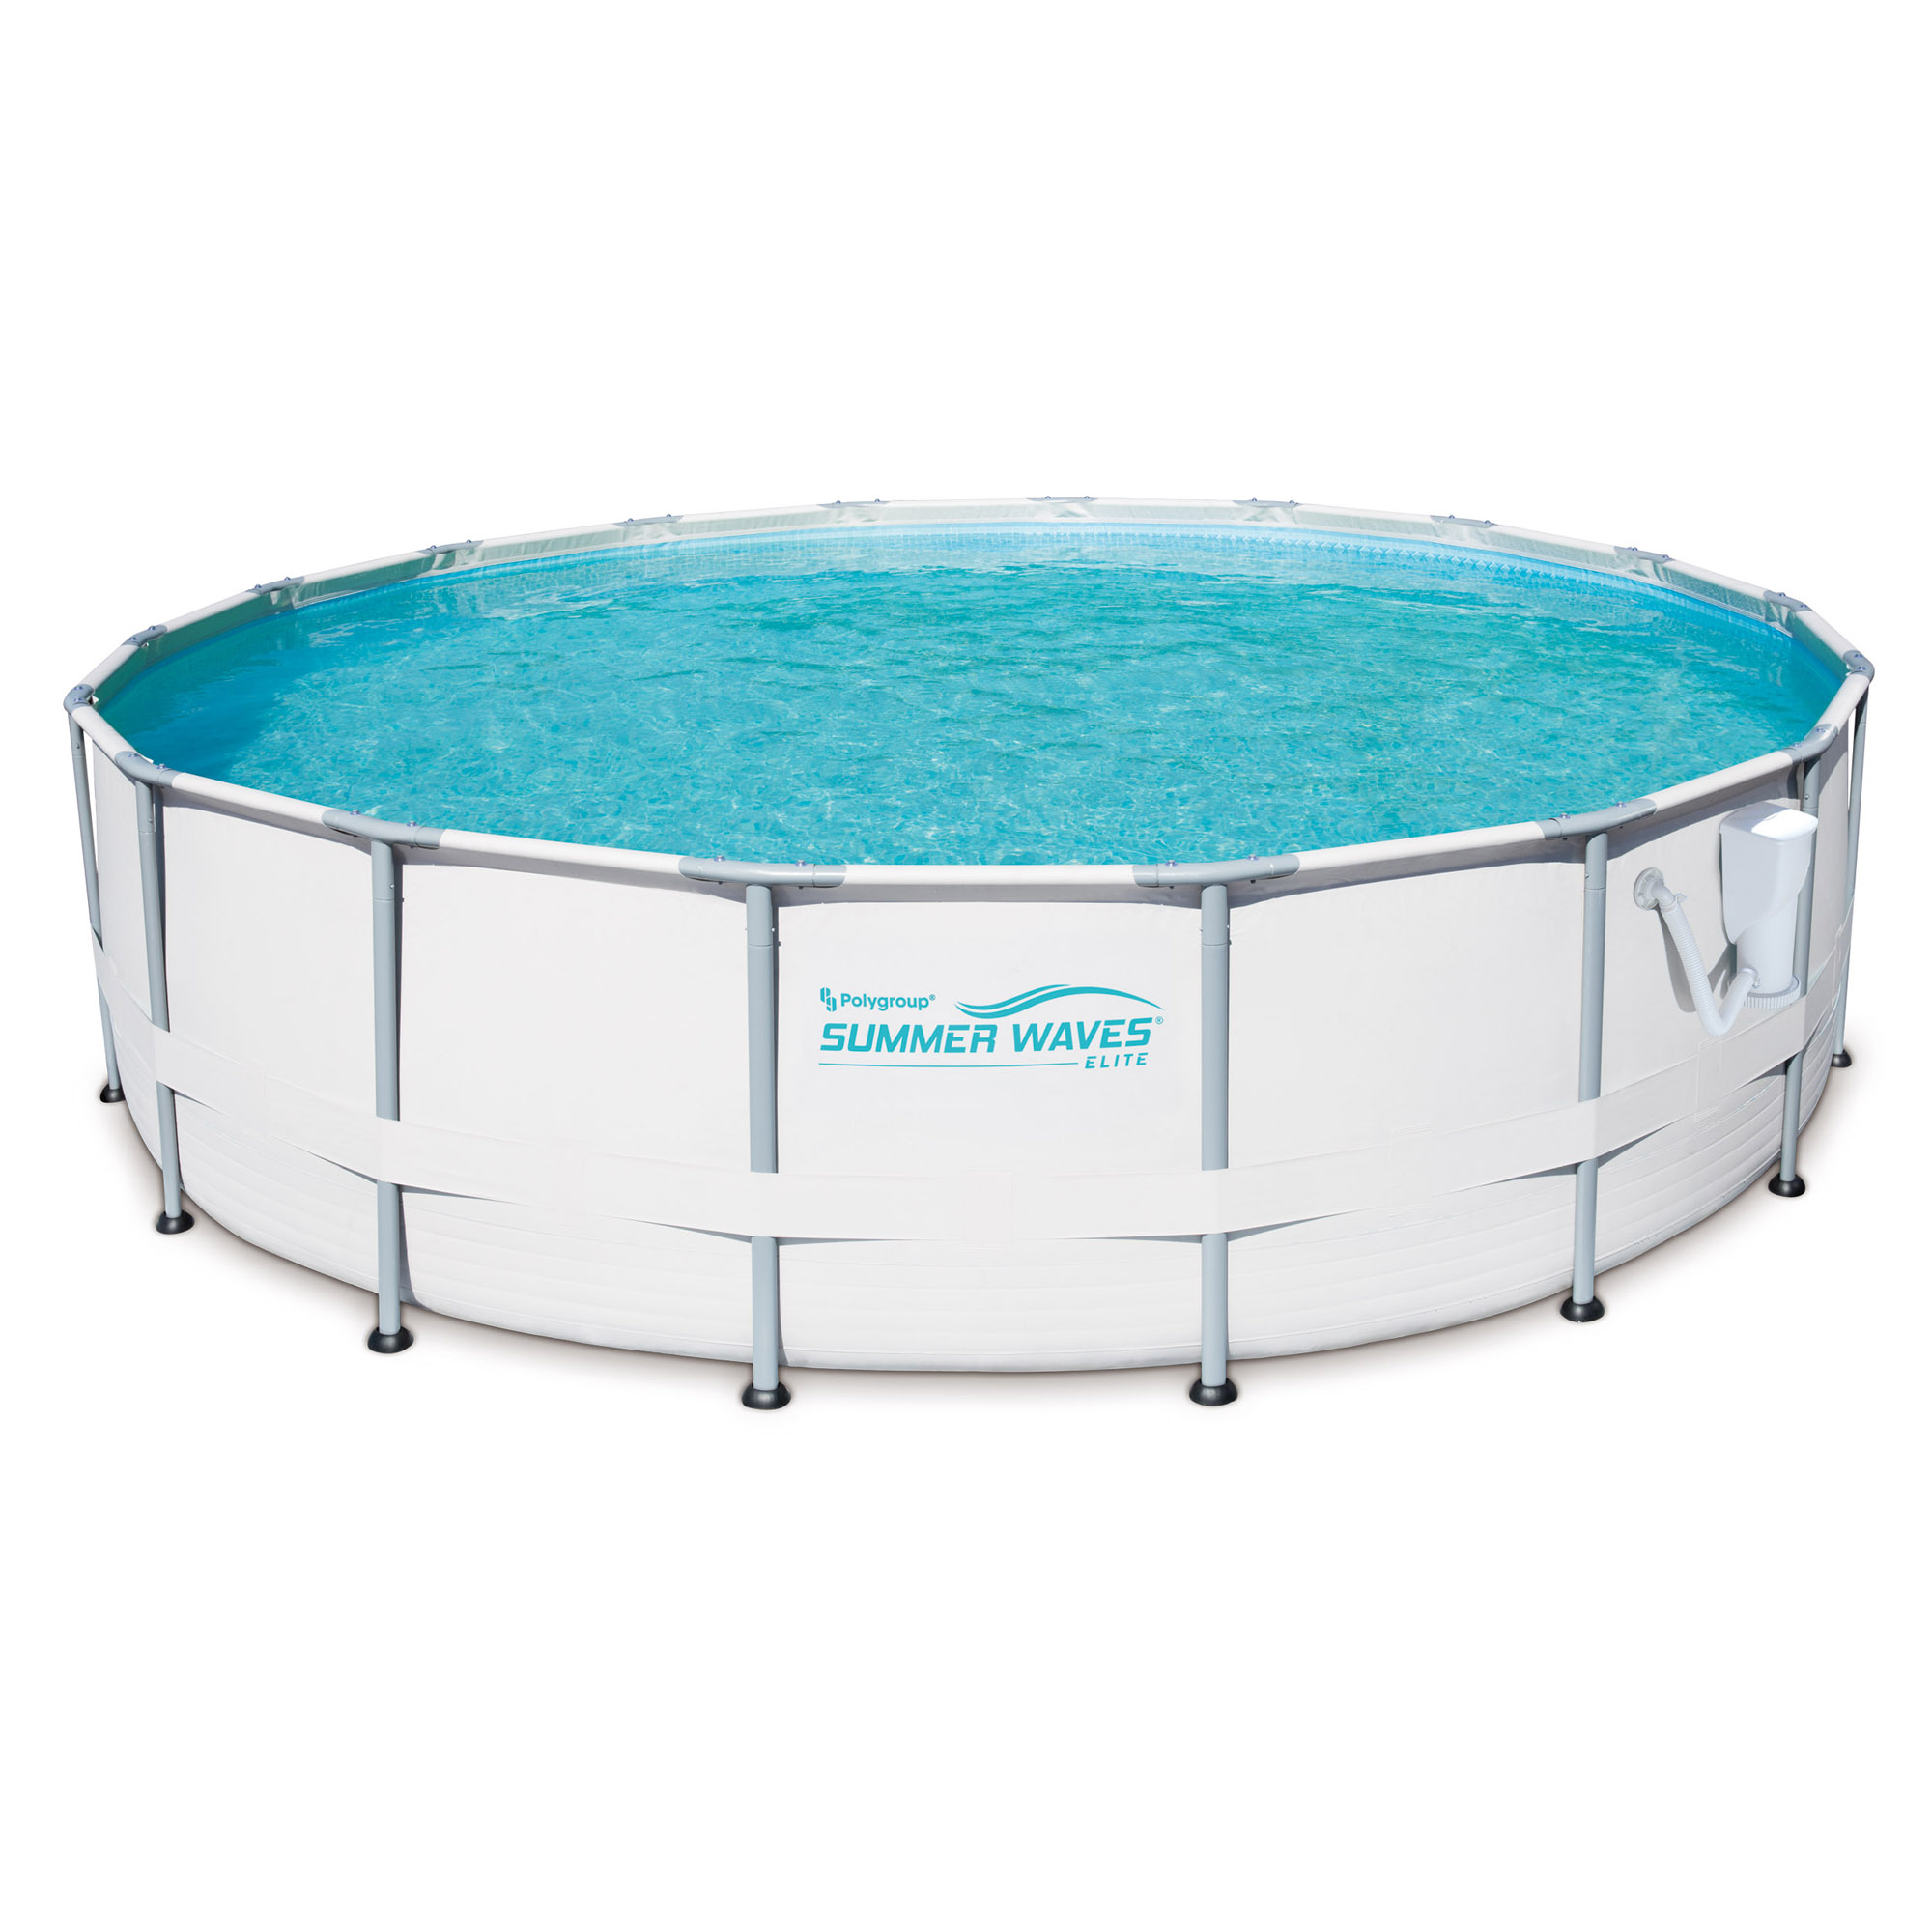 Summer Waves Elite 18 39 Foot Metal Frame Above Ground Pool Set With Filter Pump Ebay